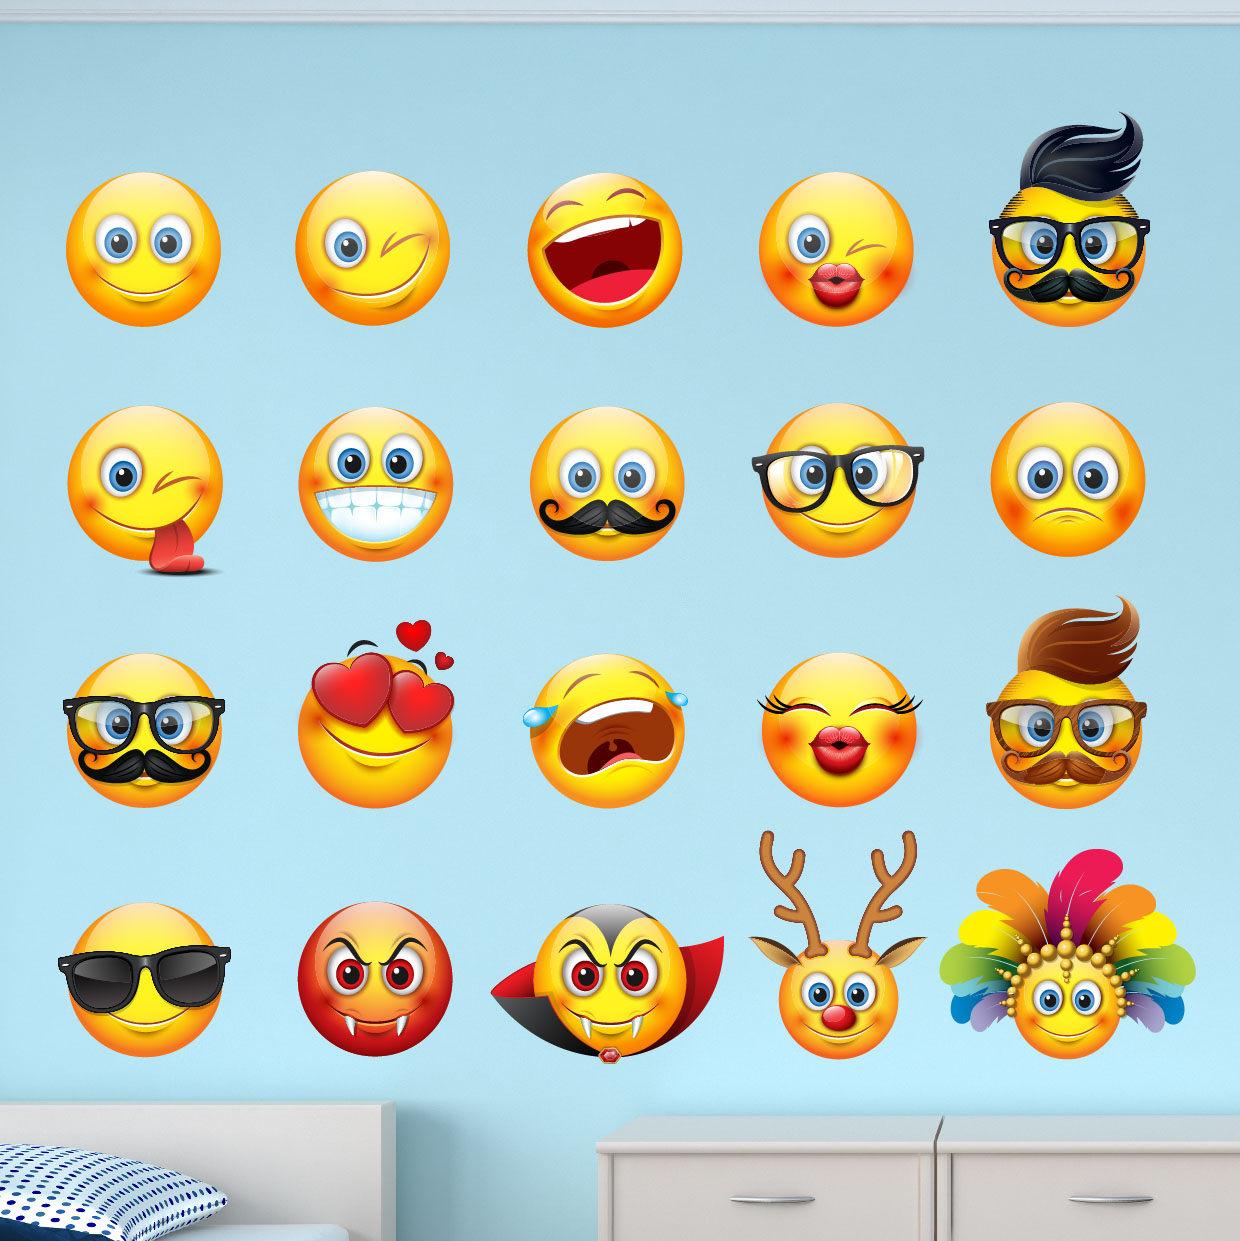 emoji-emoticon-large-wall-decals-icons.jpg